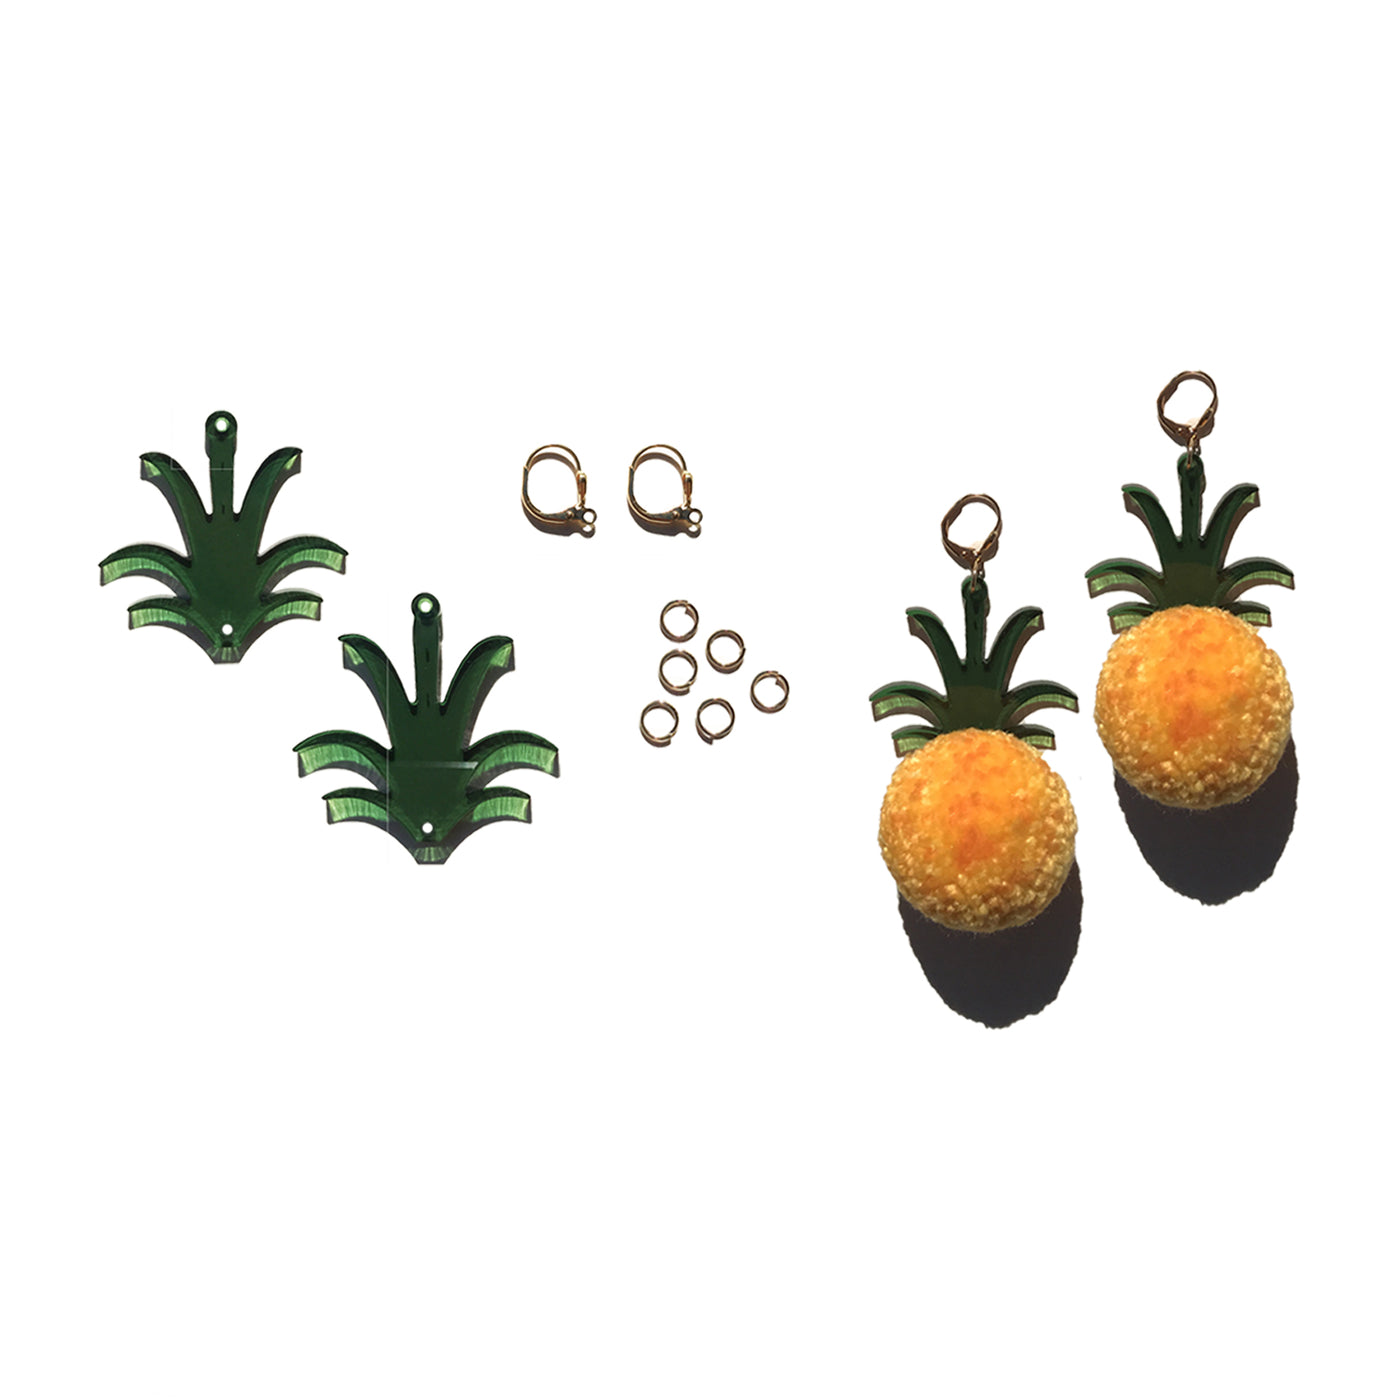 ACCESSORY: Earrings: Fruit Pom Poms